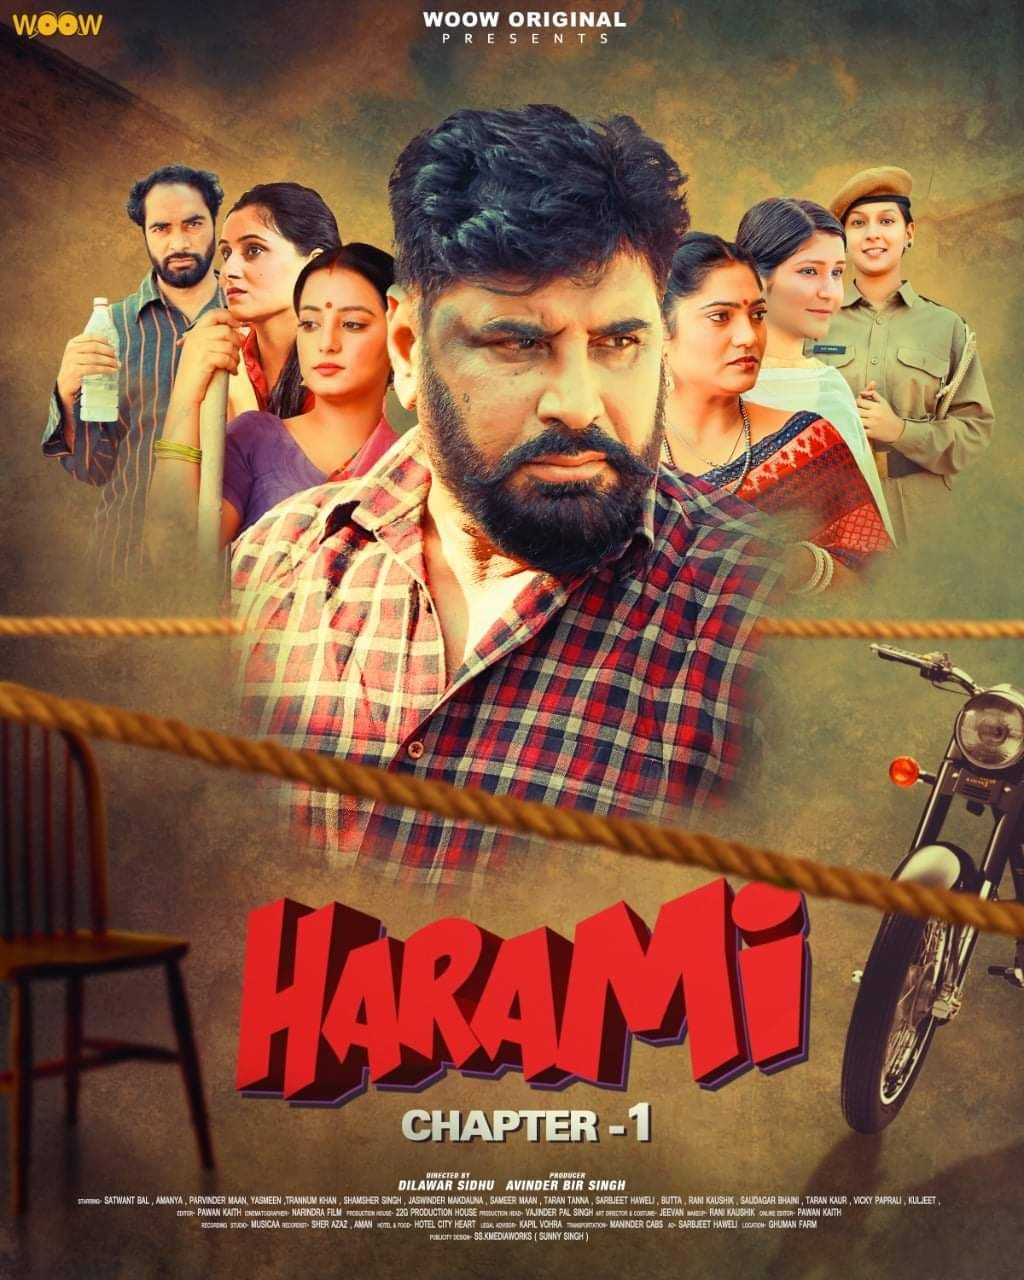 Harami Chapter 1 2021 S01 Woow Original Complete Hindi Series 720p WEB-DL x264